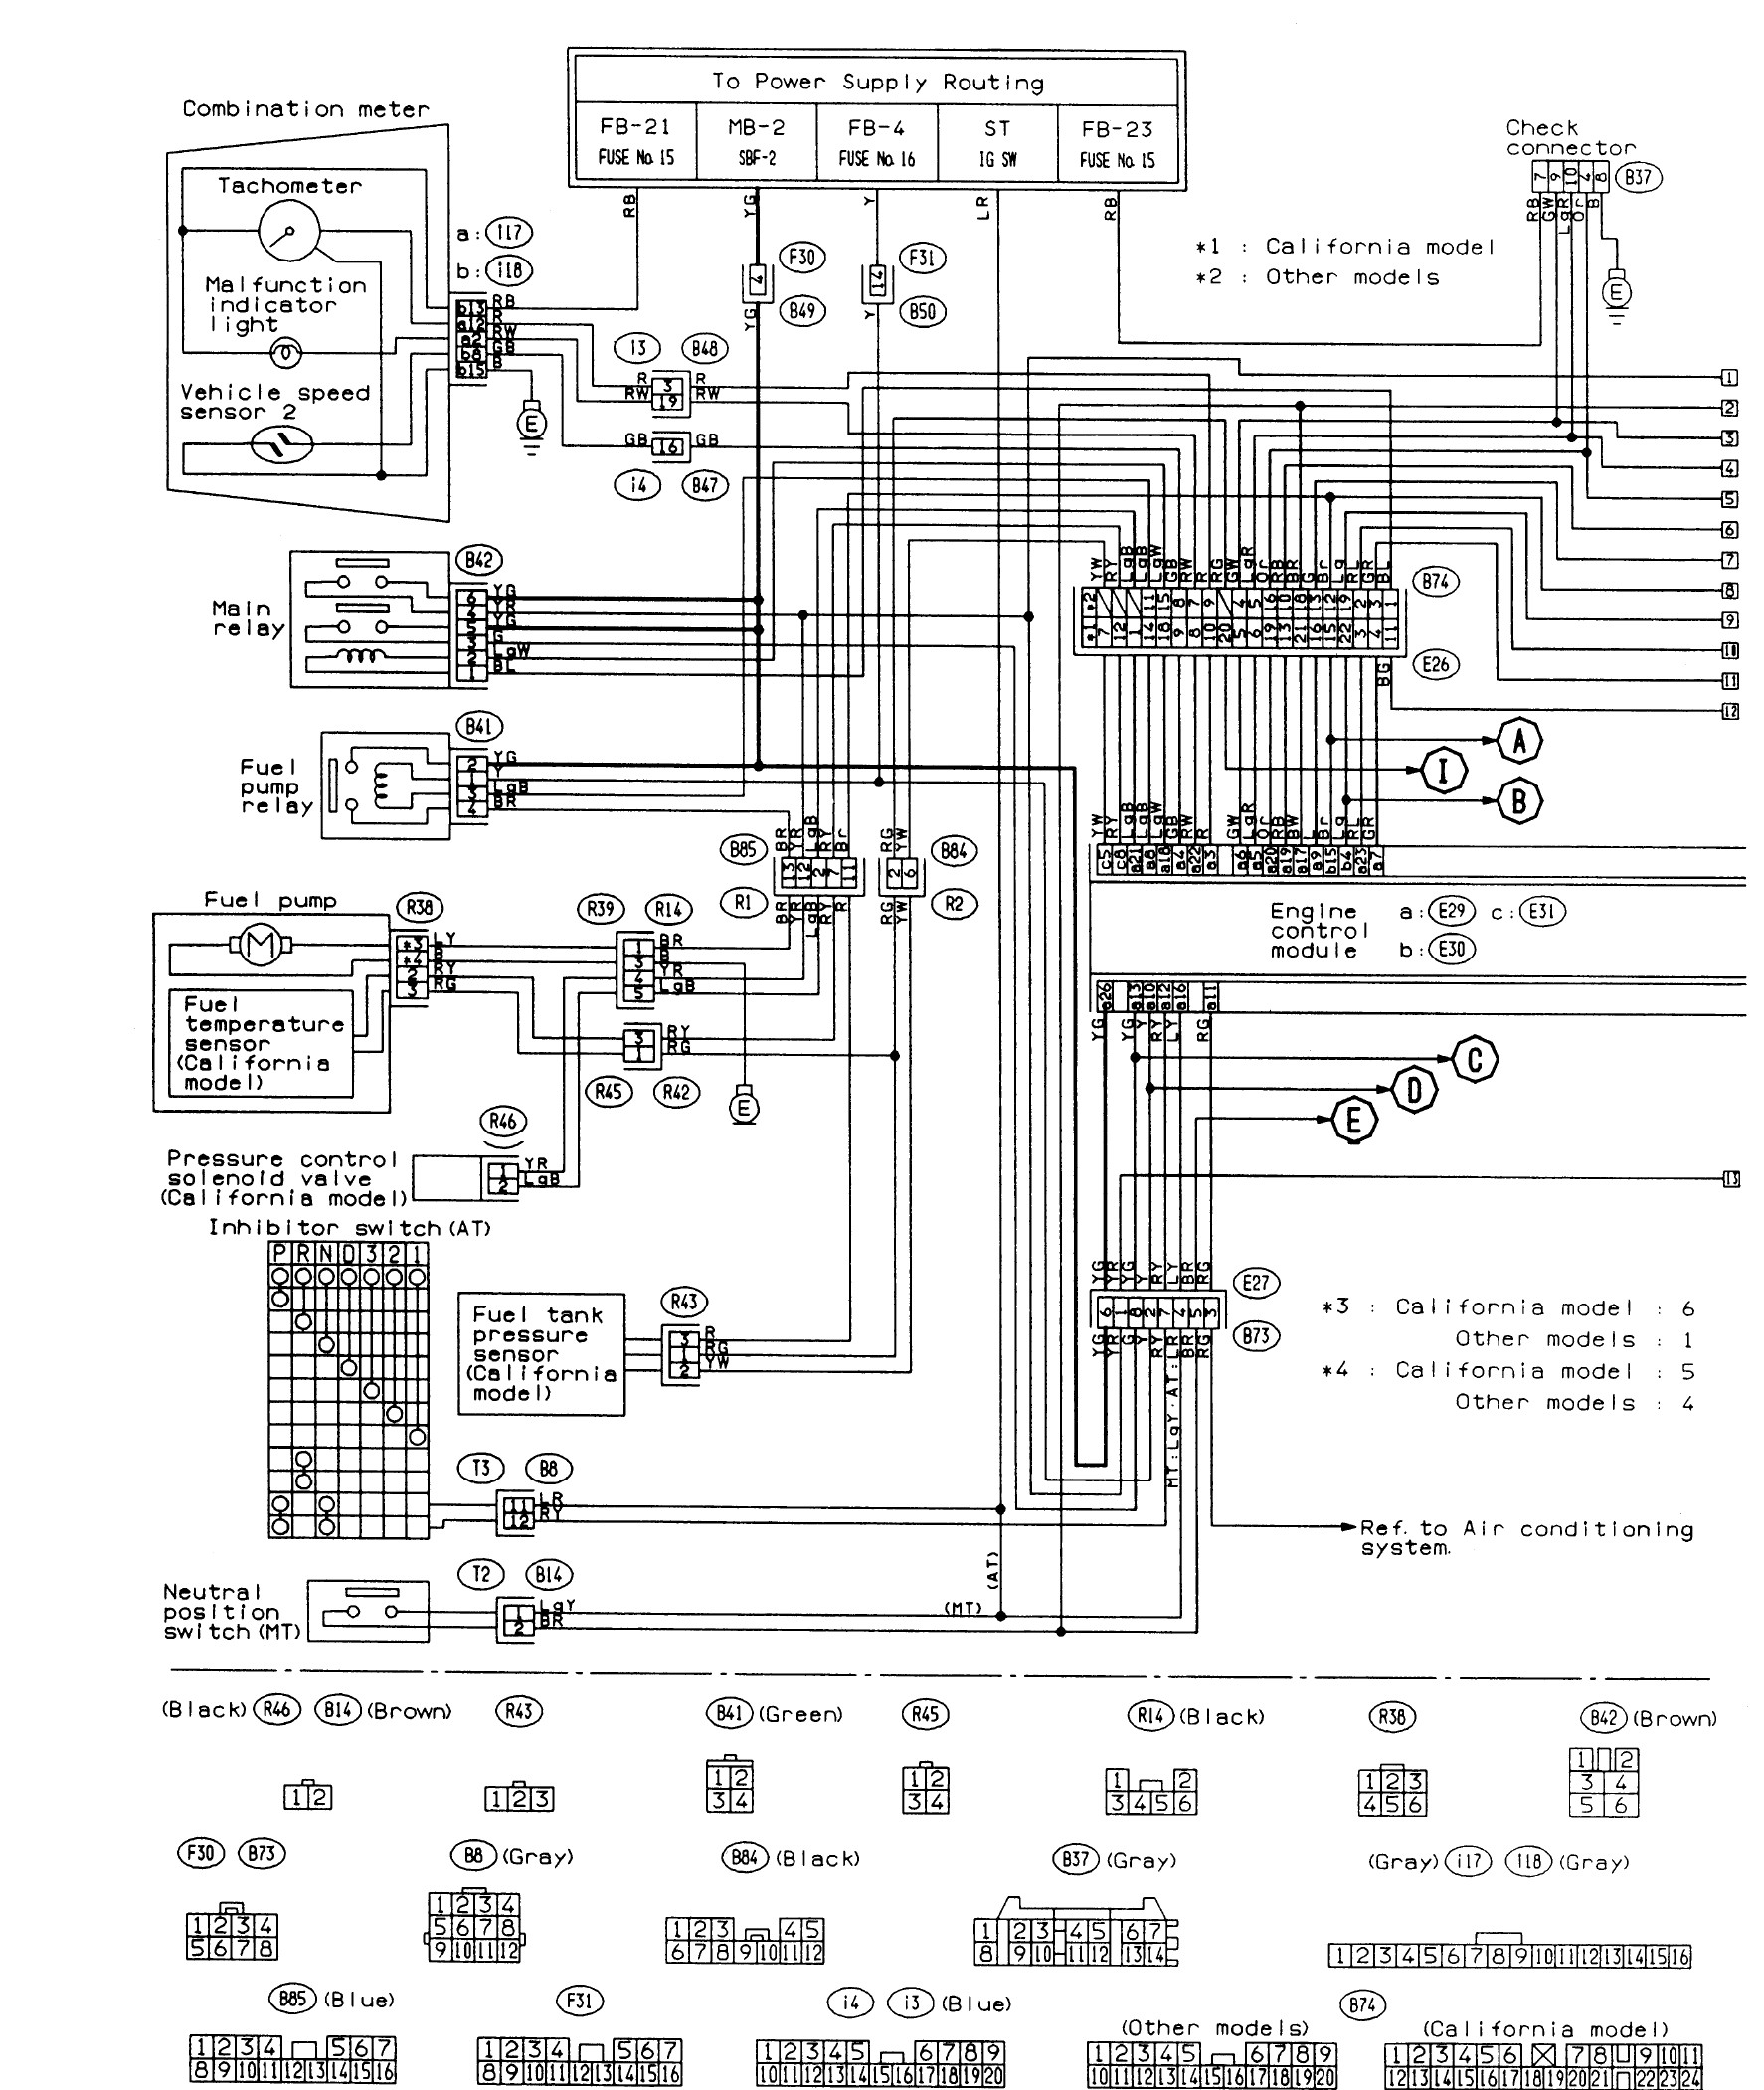 subaru-2-5-engine-diagram-addition-2000-subaru-